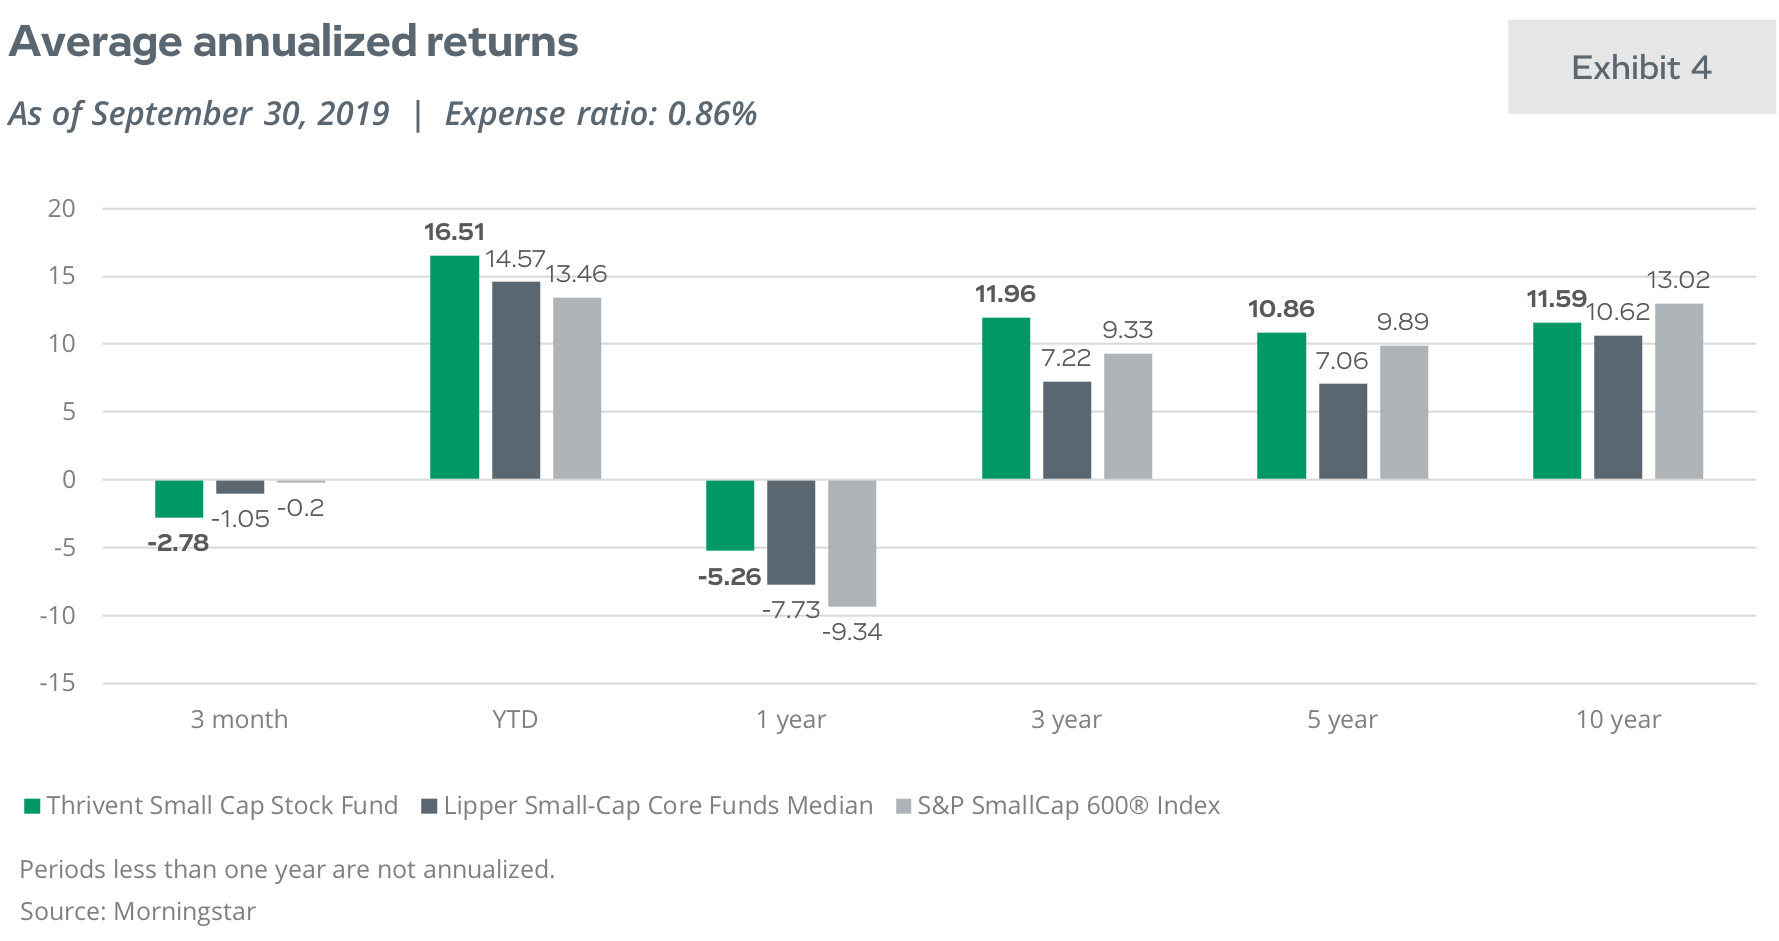 Average annualized returns